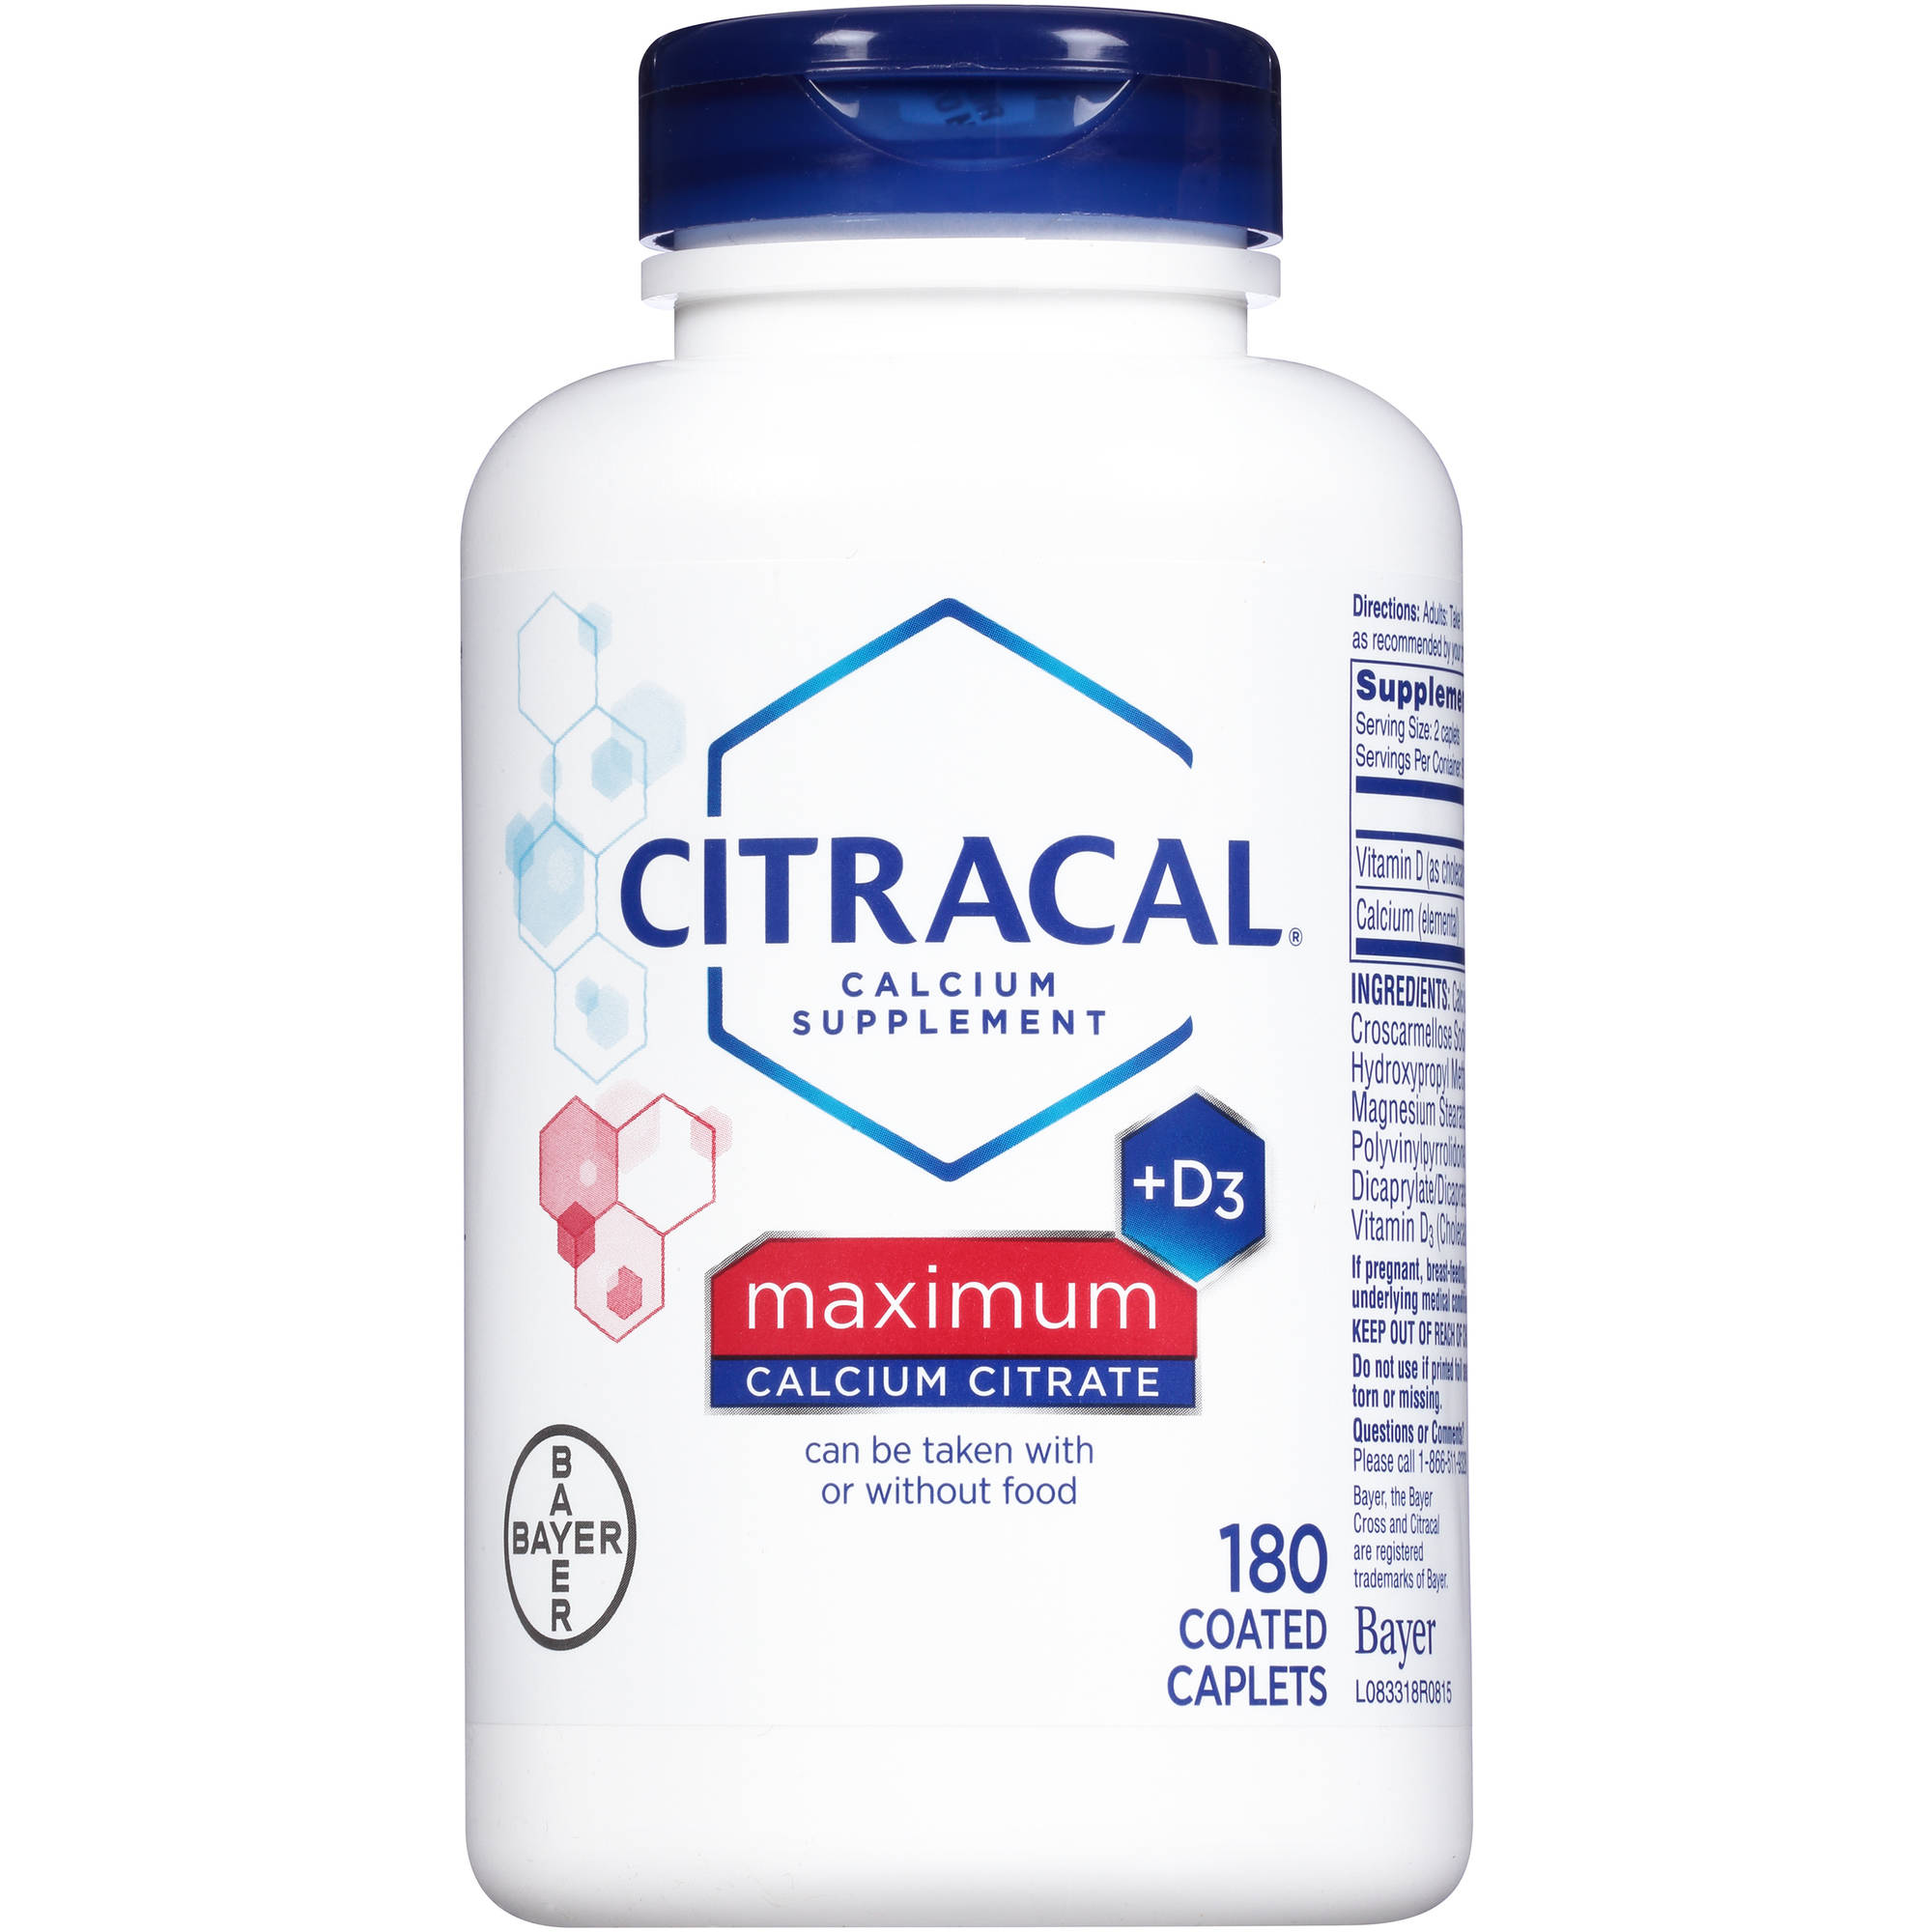 Citracal reviews